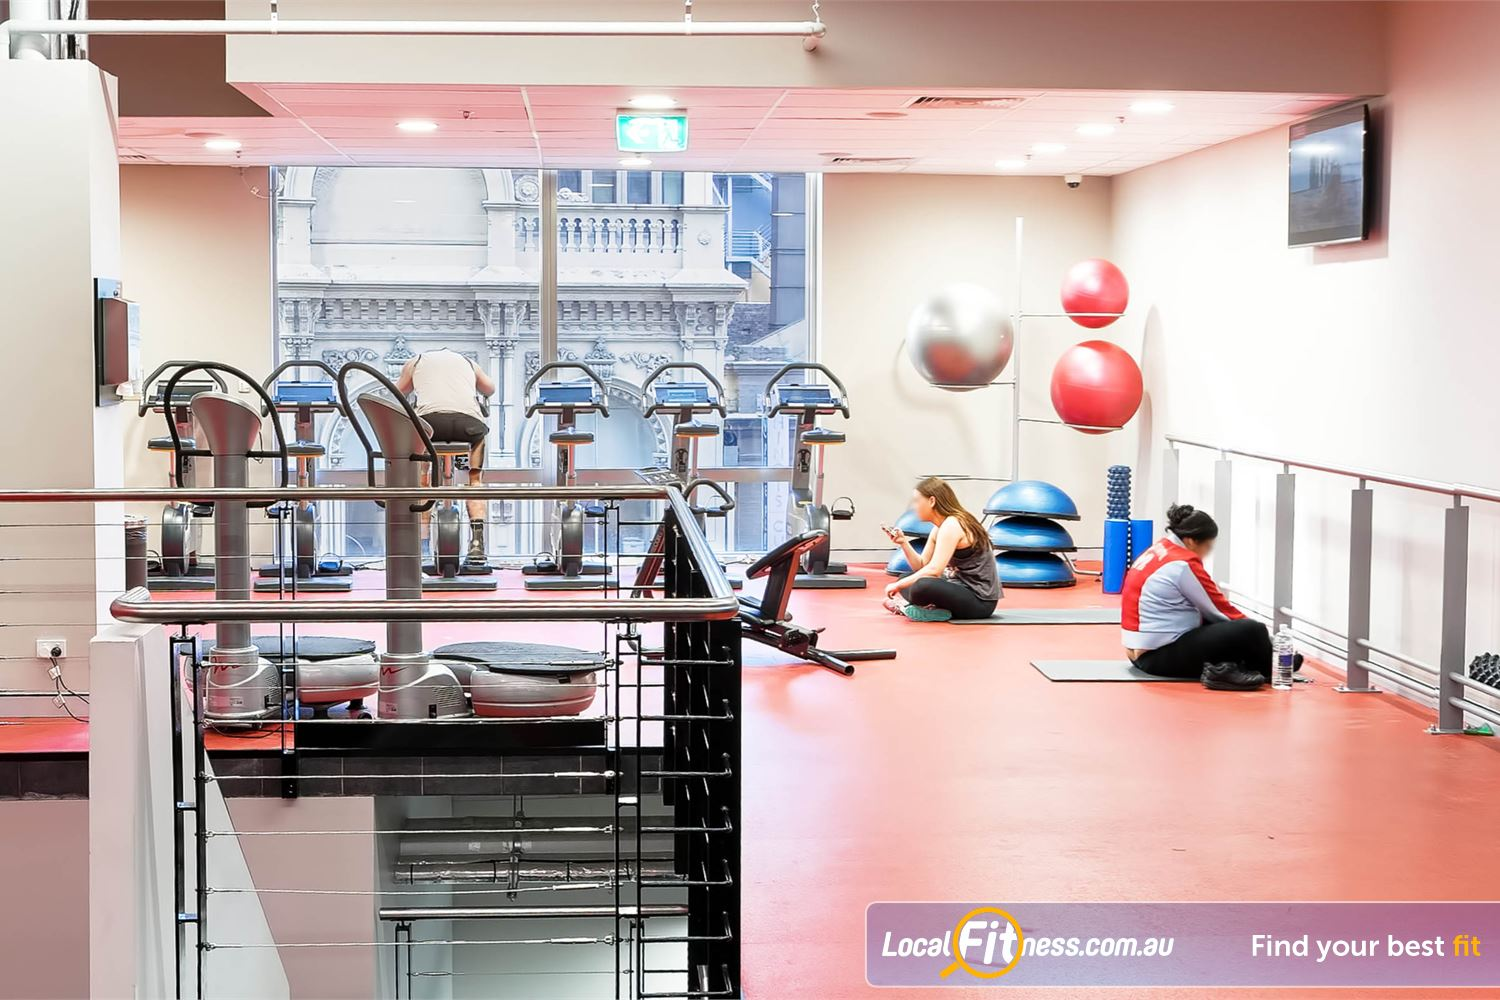 Fitness First Platinum Park St Near Strawberry Hills Dedicated ab and stretching area with Power Plate vibration machines.